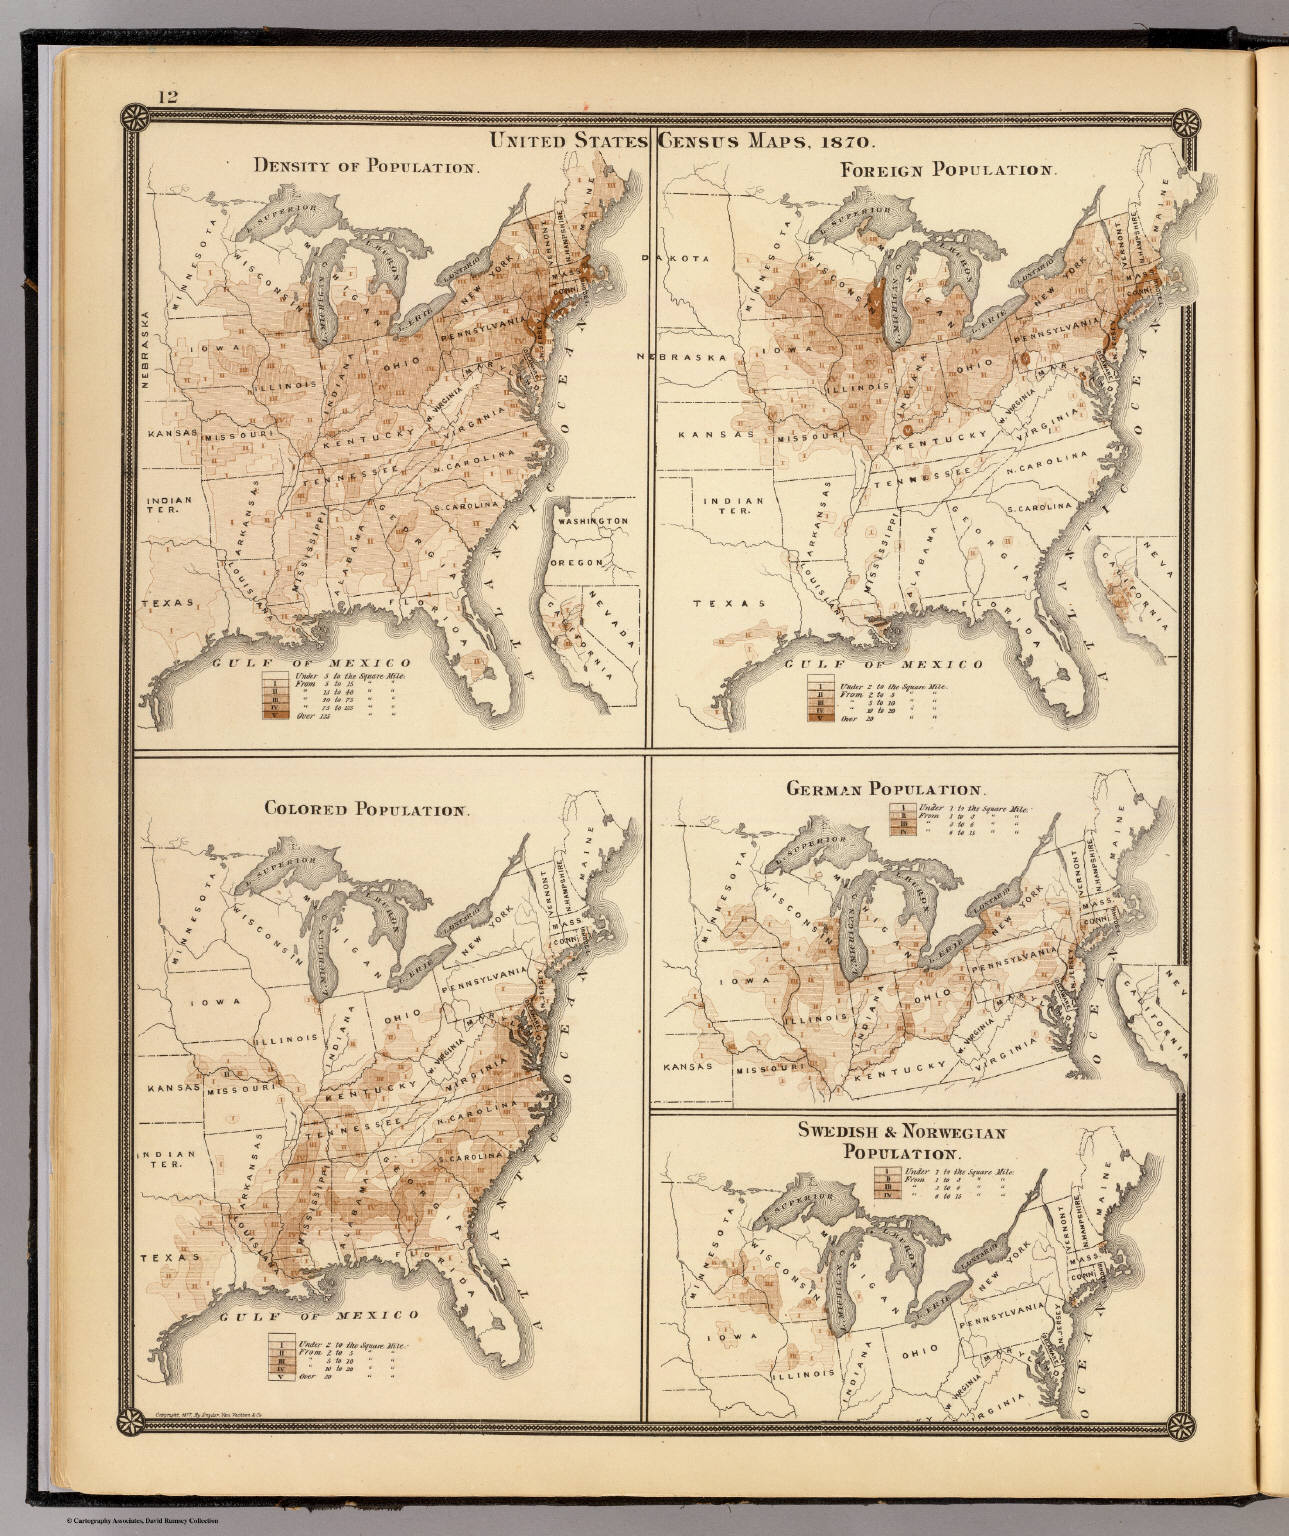 United States Census Maps 1870 David Rumsey Historical Map